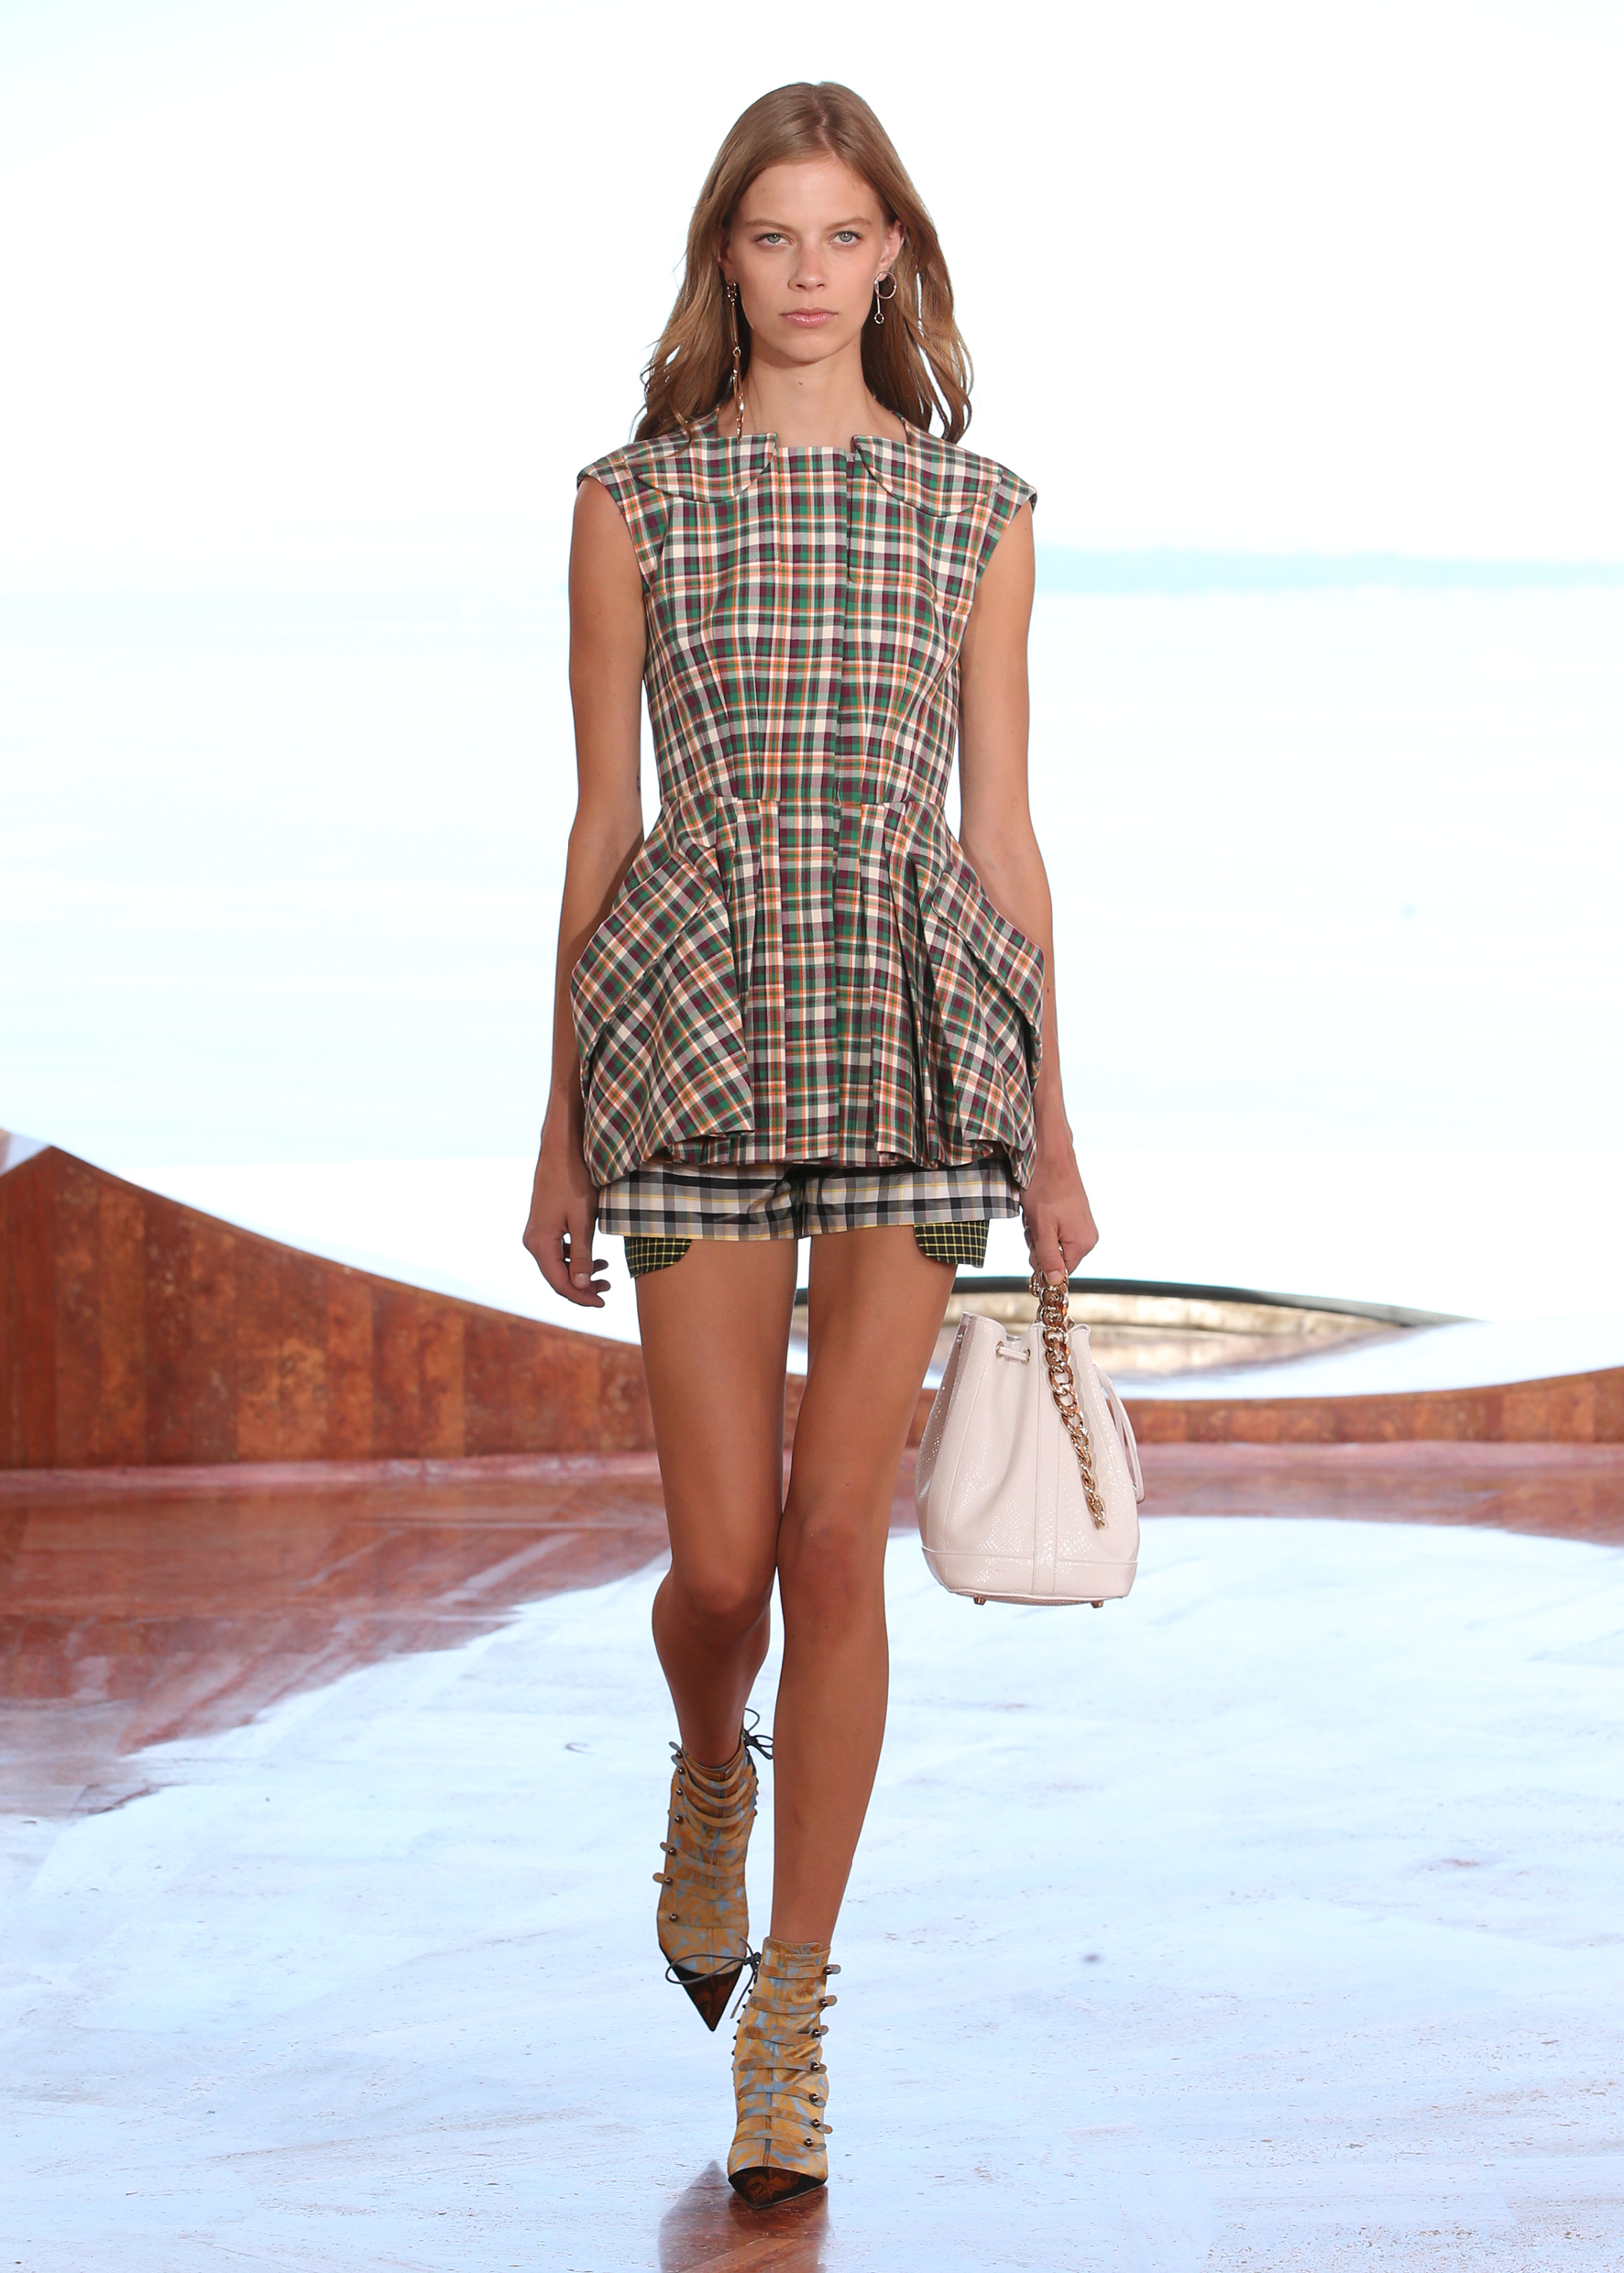 Paradise dior collection cruise forecast dress for autumn in 2019